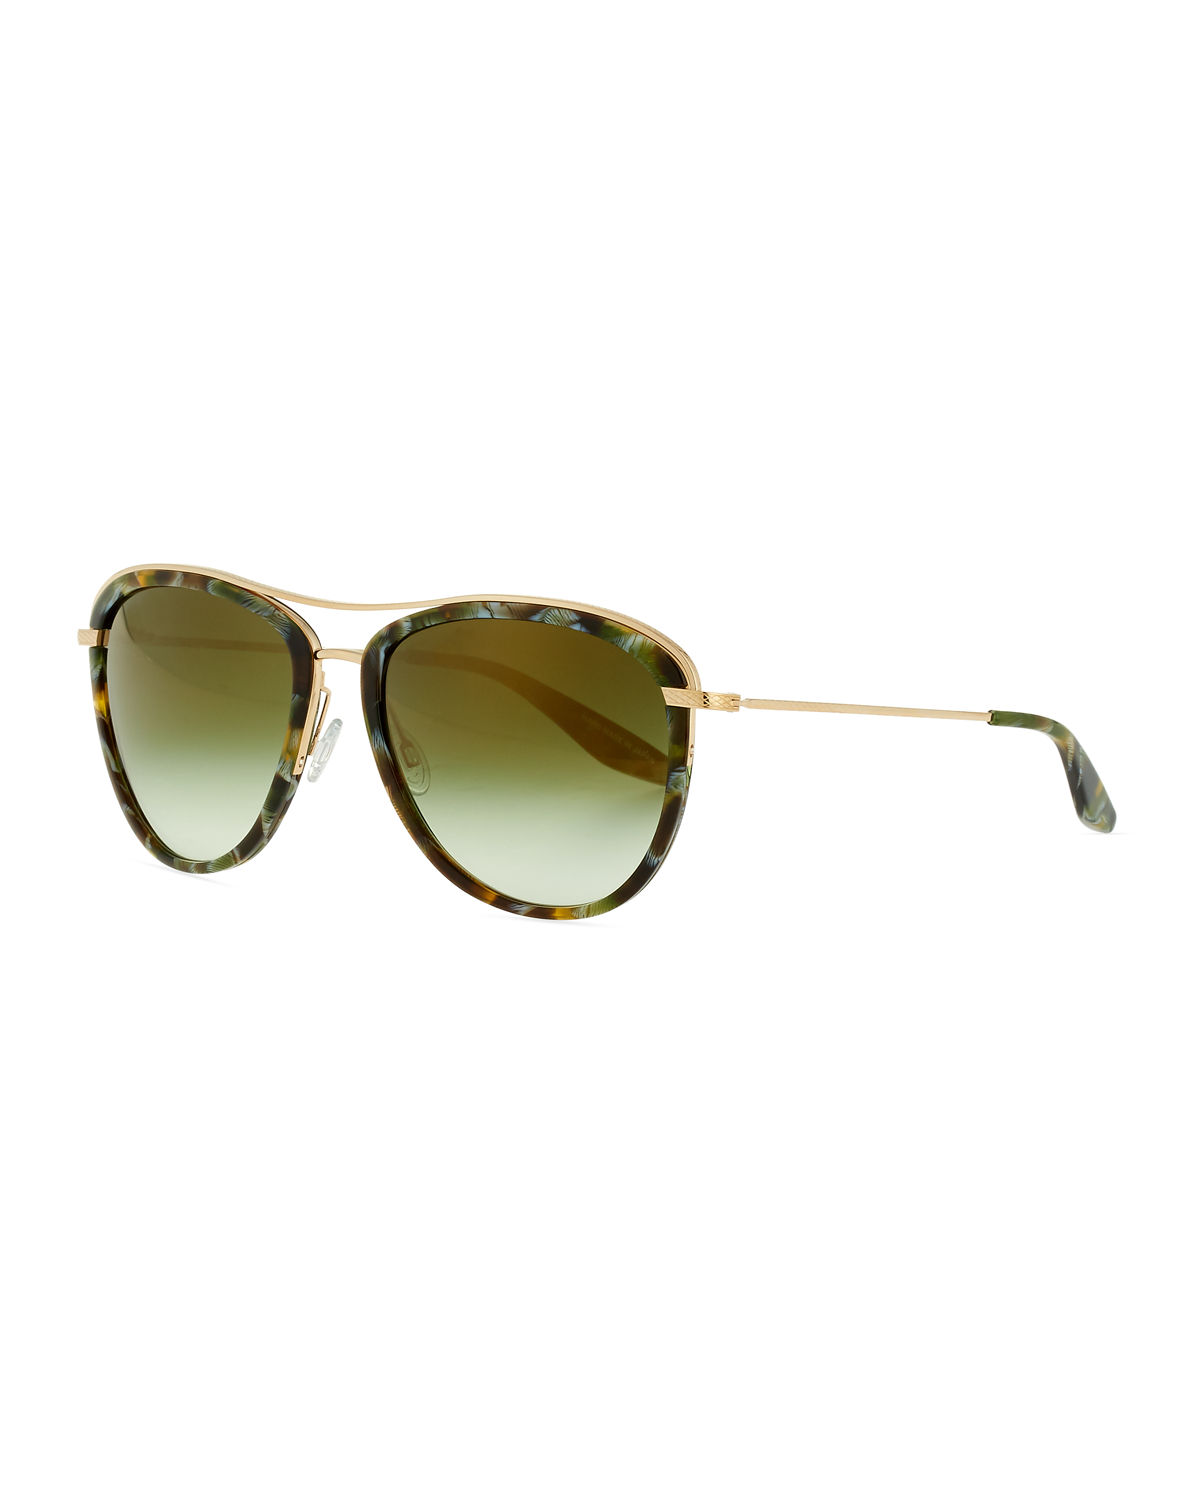 Barton Perreira Sunglasses AVIATRESS UNIVERSAL-FIT AVIATOR SUNGLASSES